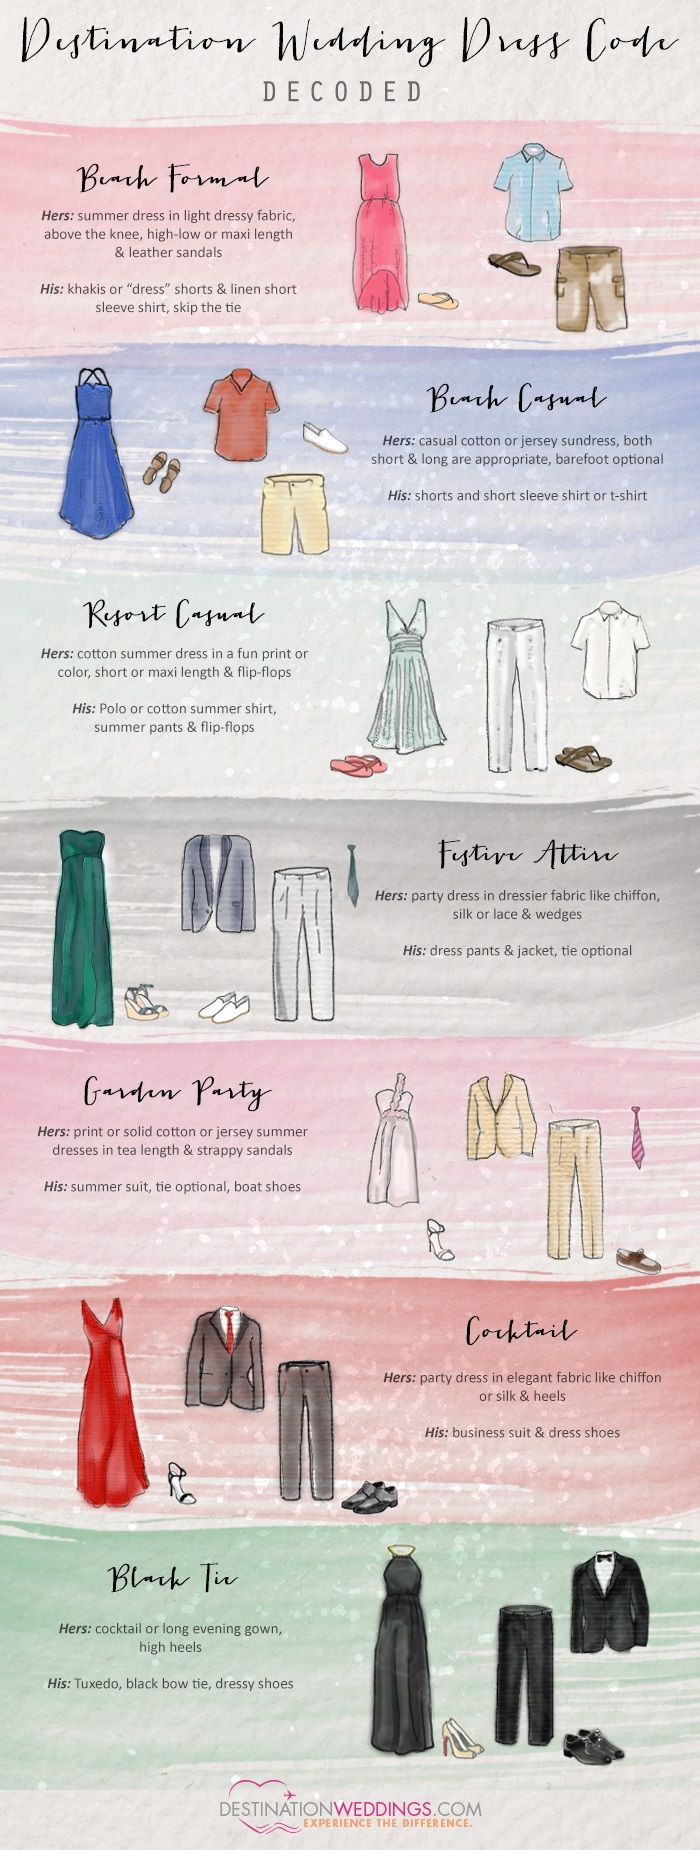 Wedding Guest Attire Demystified: An Infographic forecasting